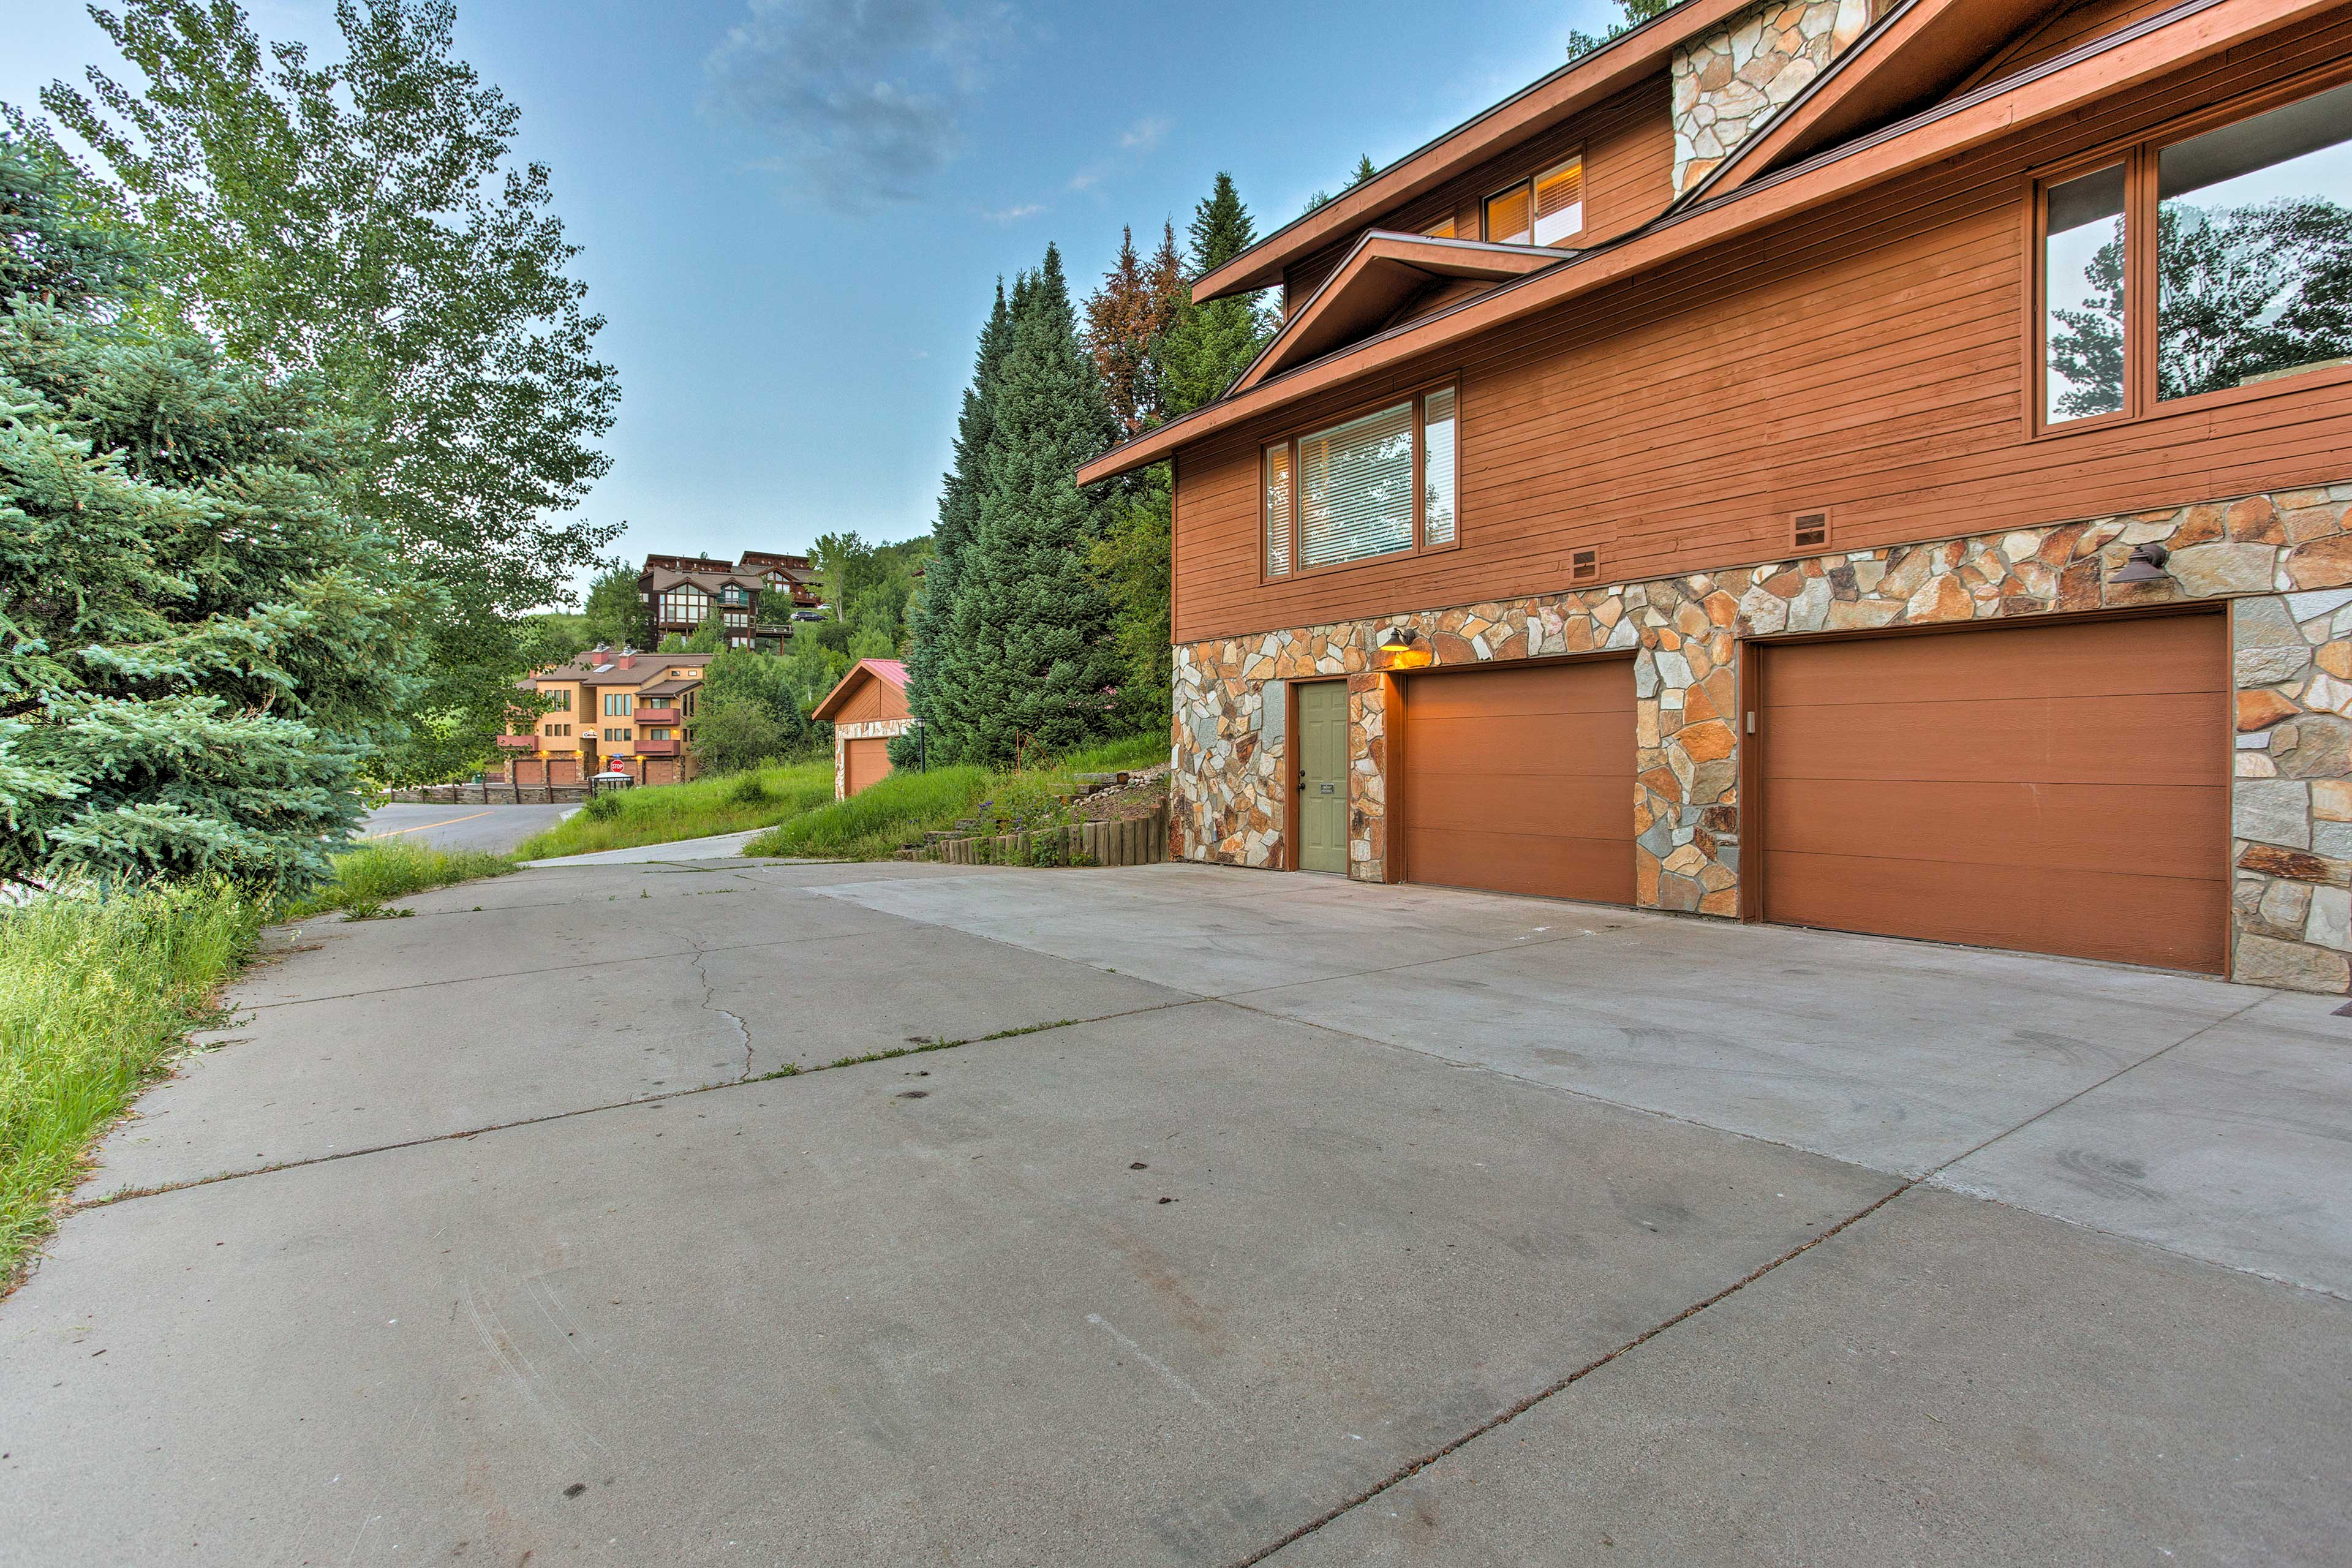 Gaze out at the scenic mountain views surrounding the property.